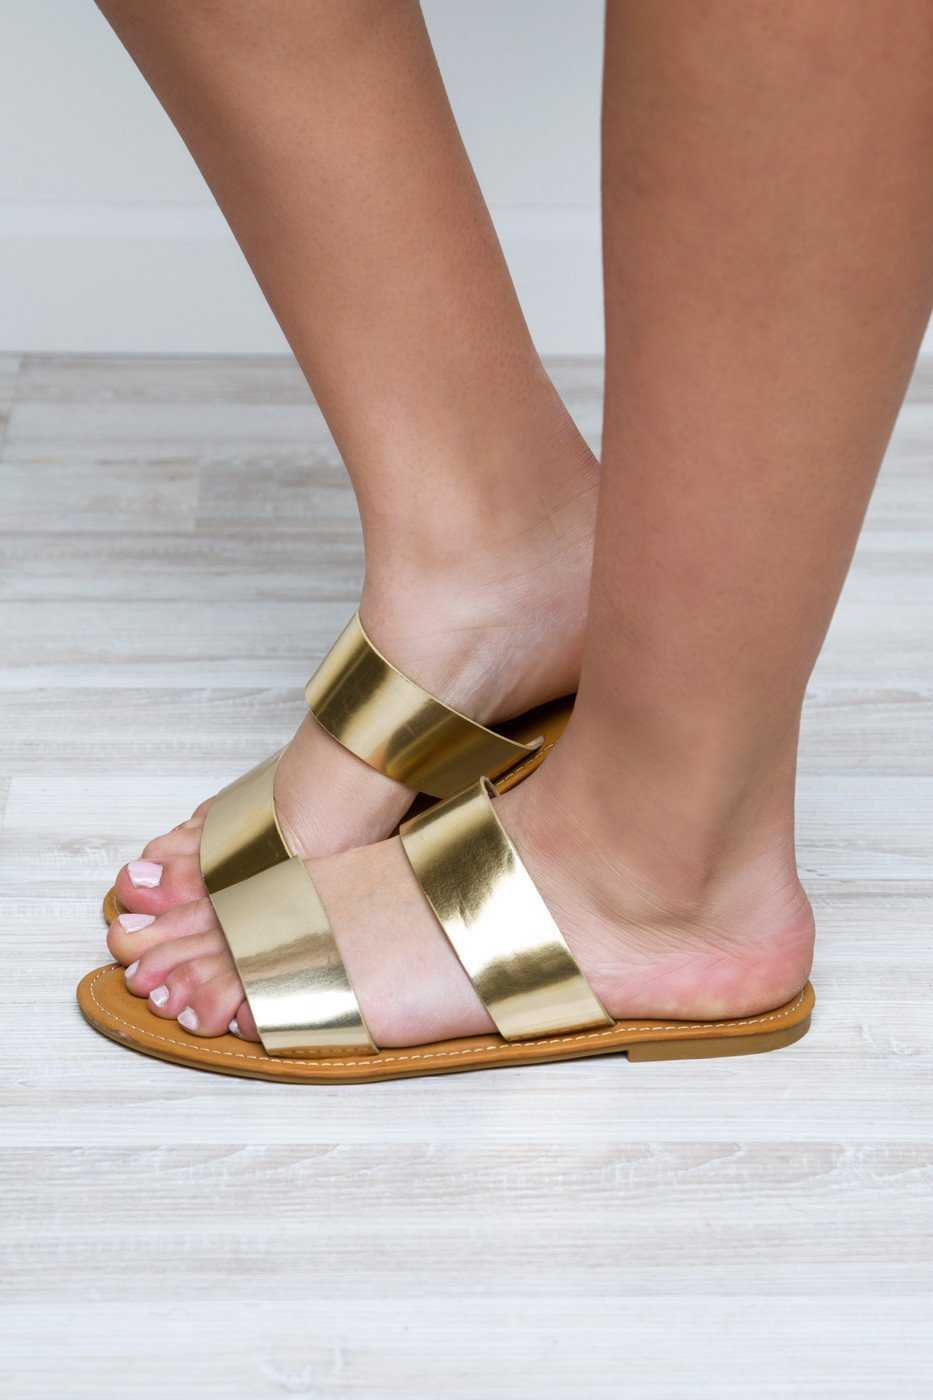 Shoes - Believe Me Sandals - Gold